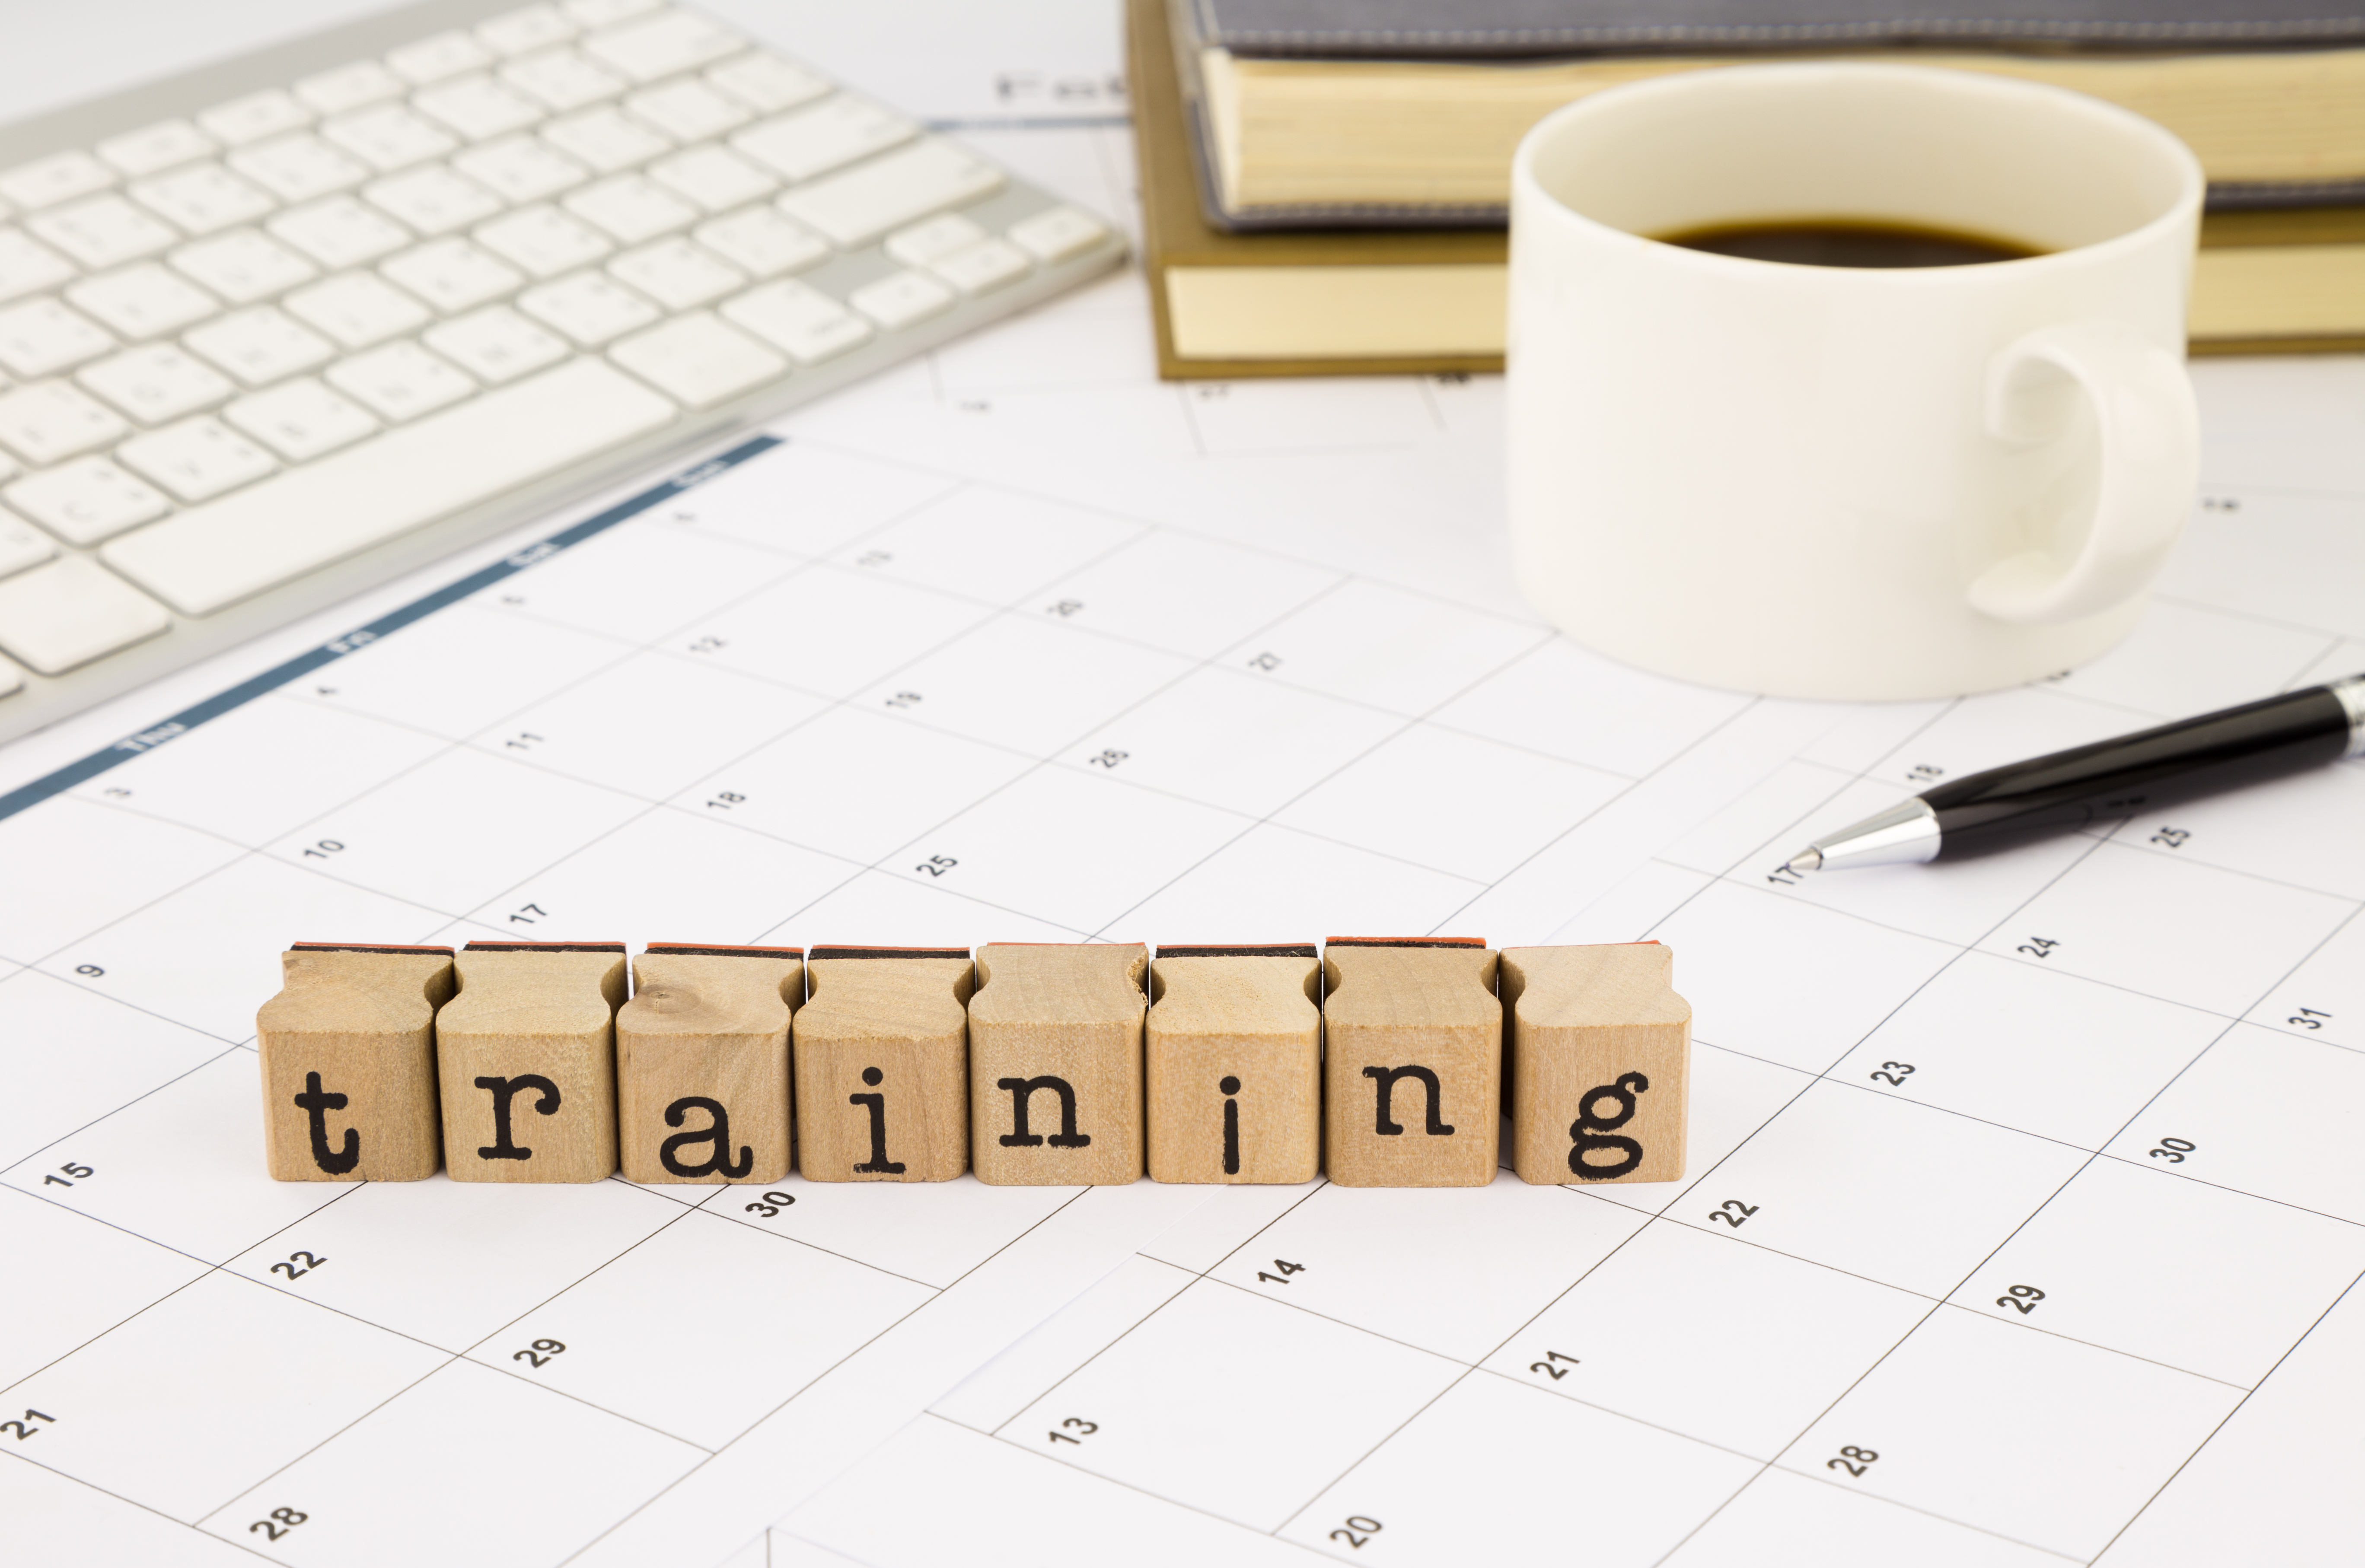 5 Steps to a Successful Corporate Training Plan for 2020